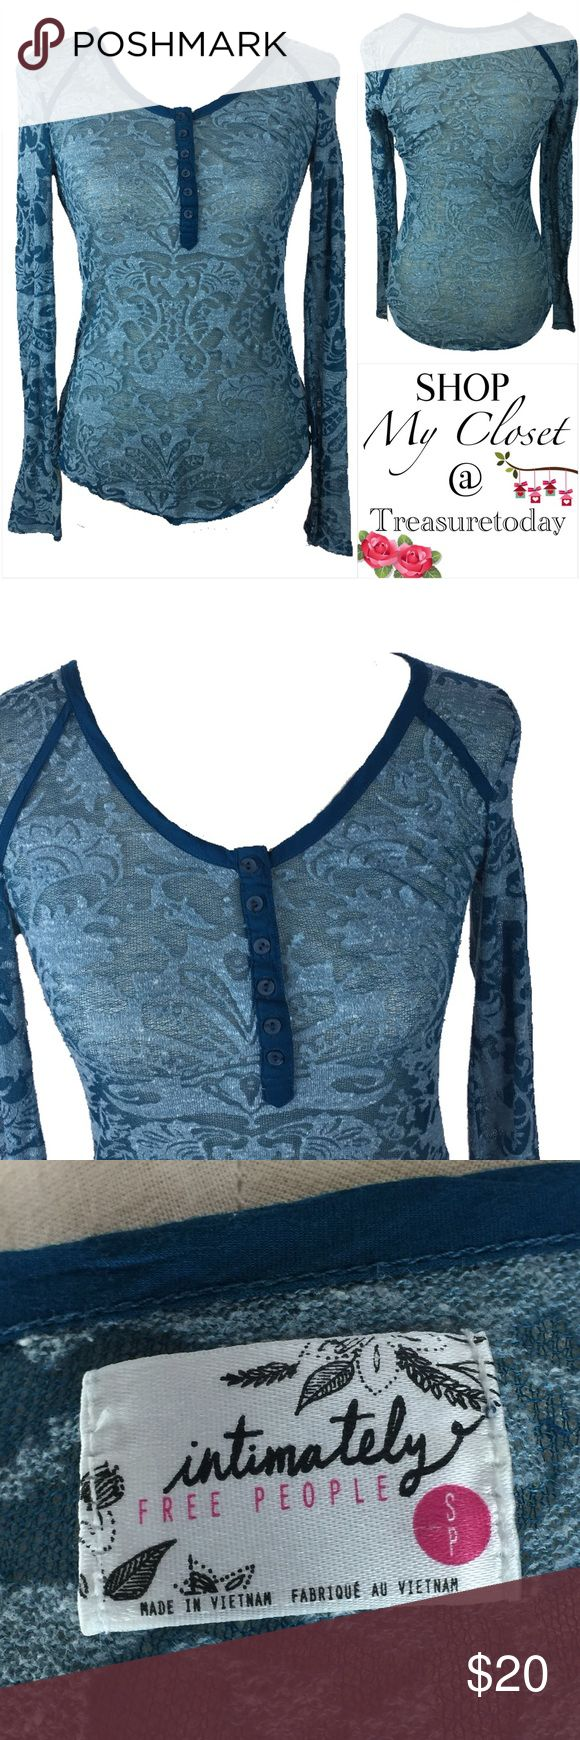 Free People Semi Sheer Blue Long Sleeve Top Super cute! Excellent condition, no rips or stains. Has stretch and looks sexy on since it's semi transparent. Bundle 2 or more items to get %10 off 💖 Free People Tops Tees - Long Sleeve